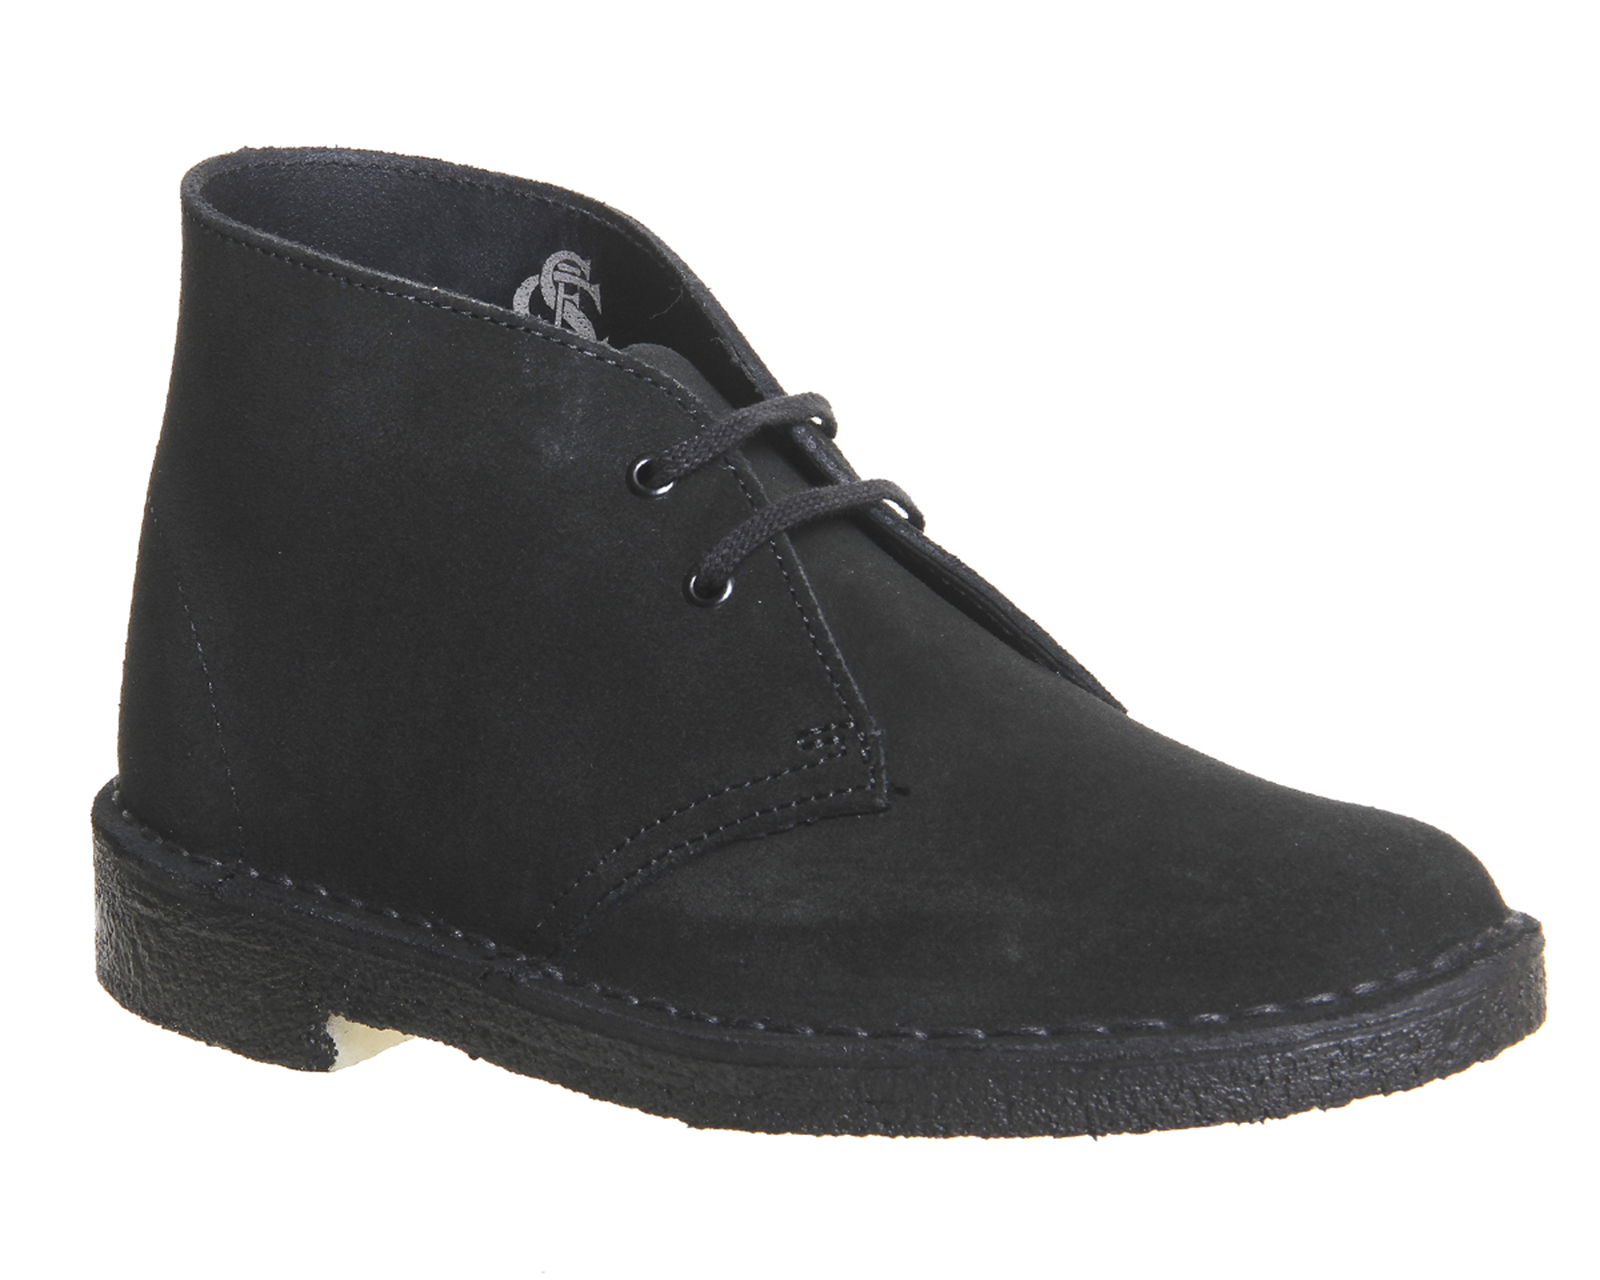 be3dbe8a111 Sentinel Womens Clarks Originals Desert Boots Black Suede Boots